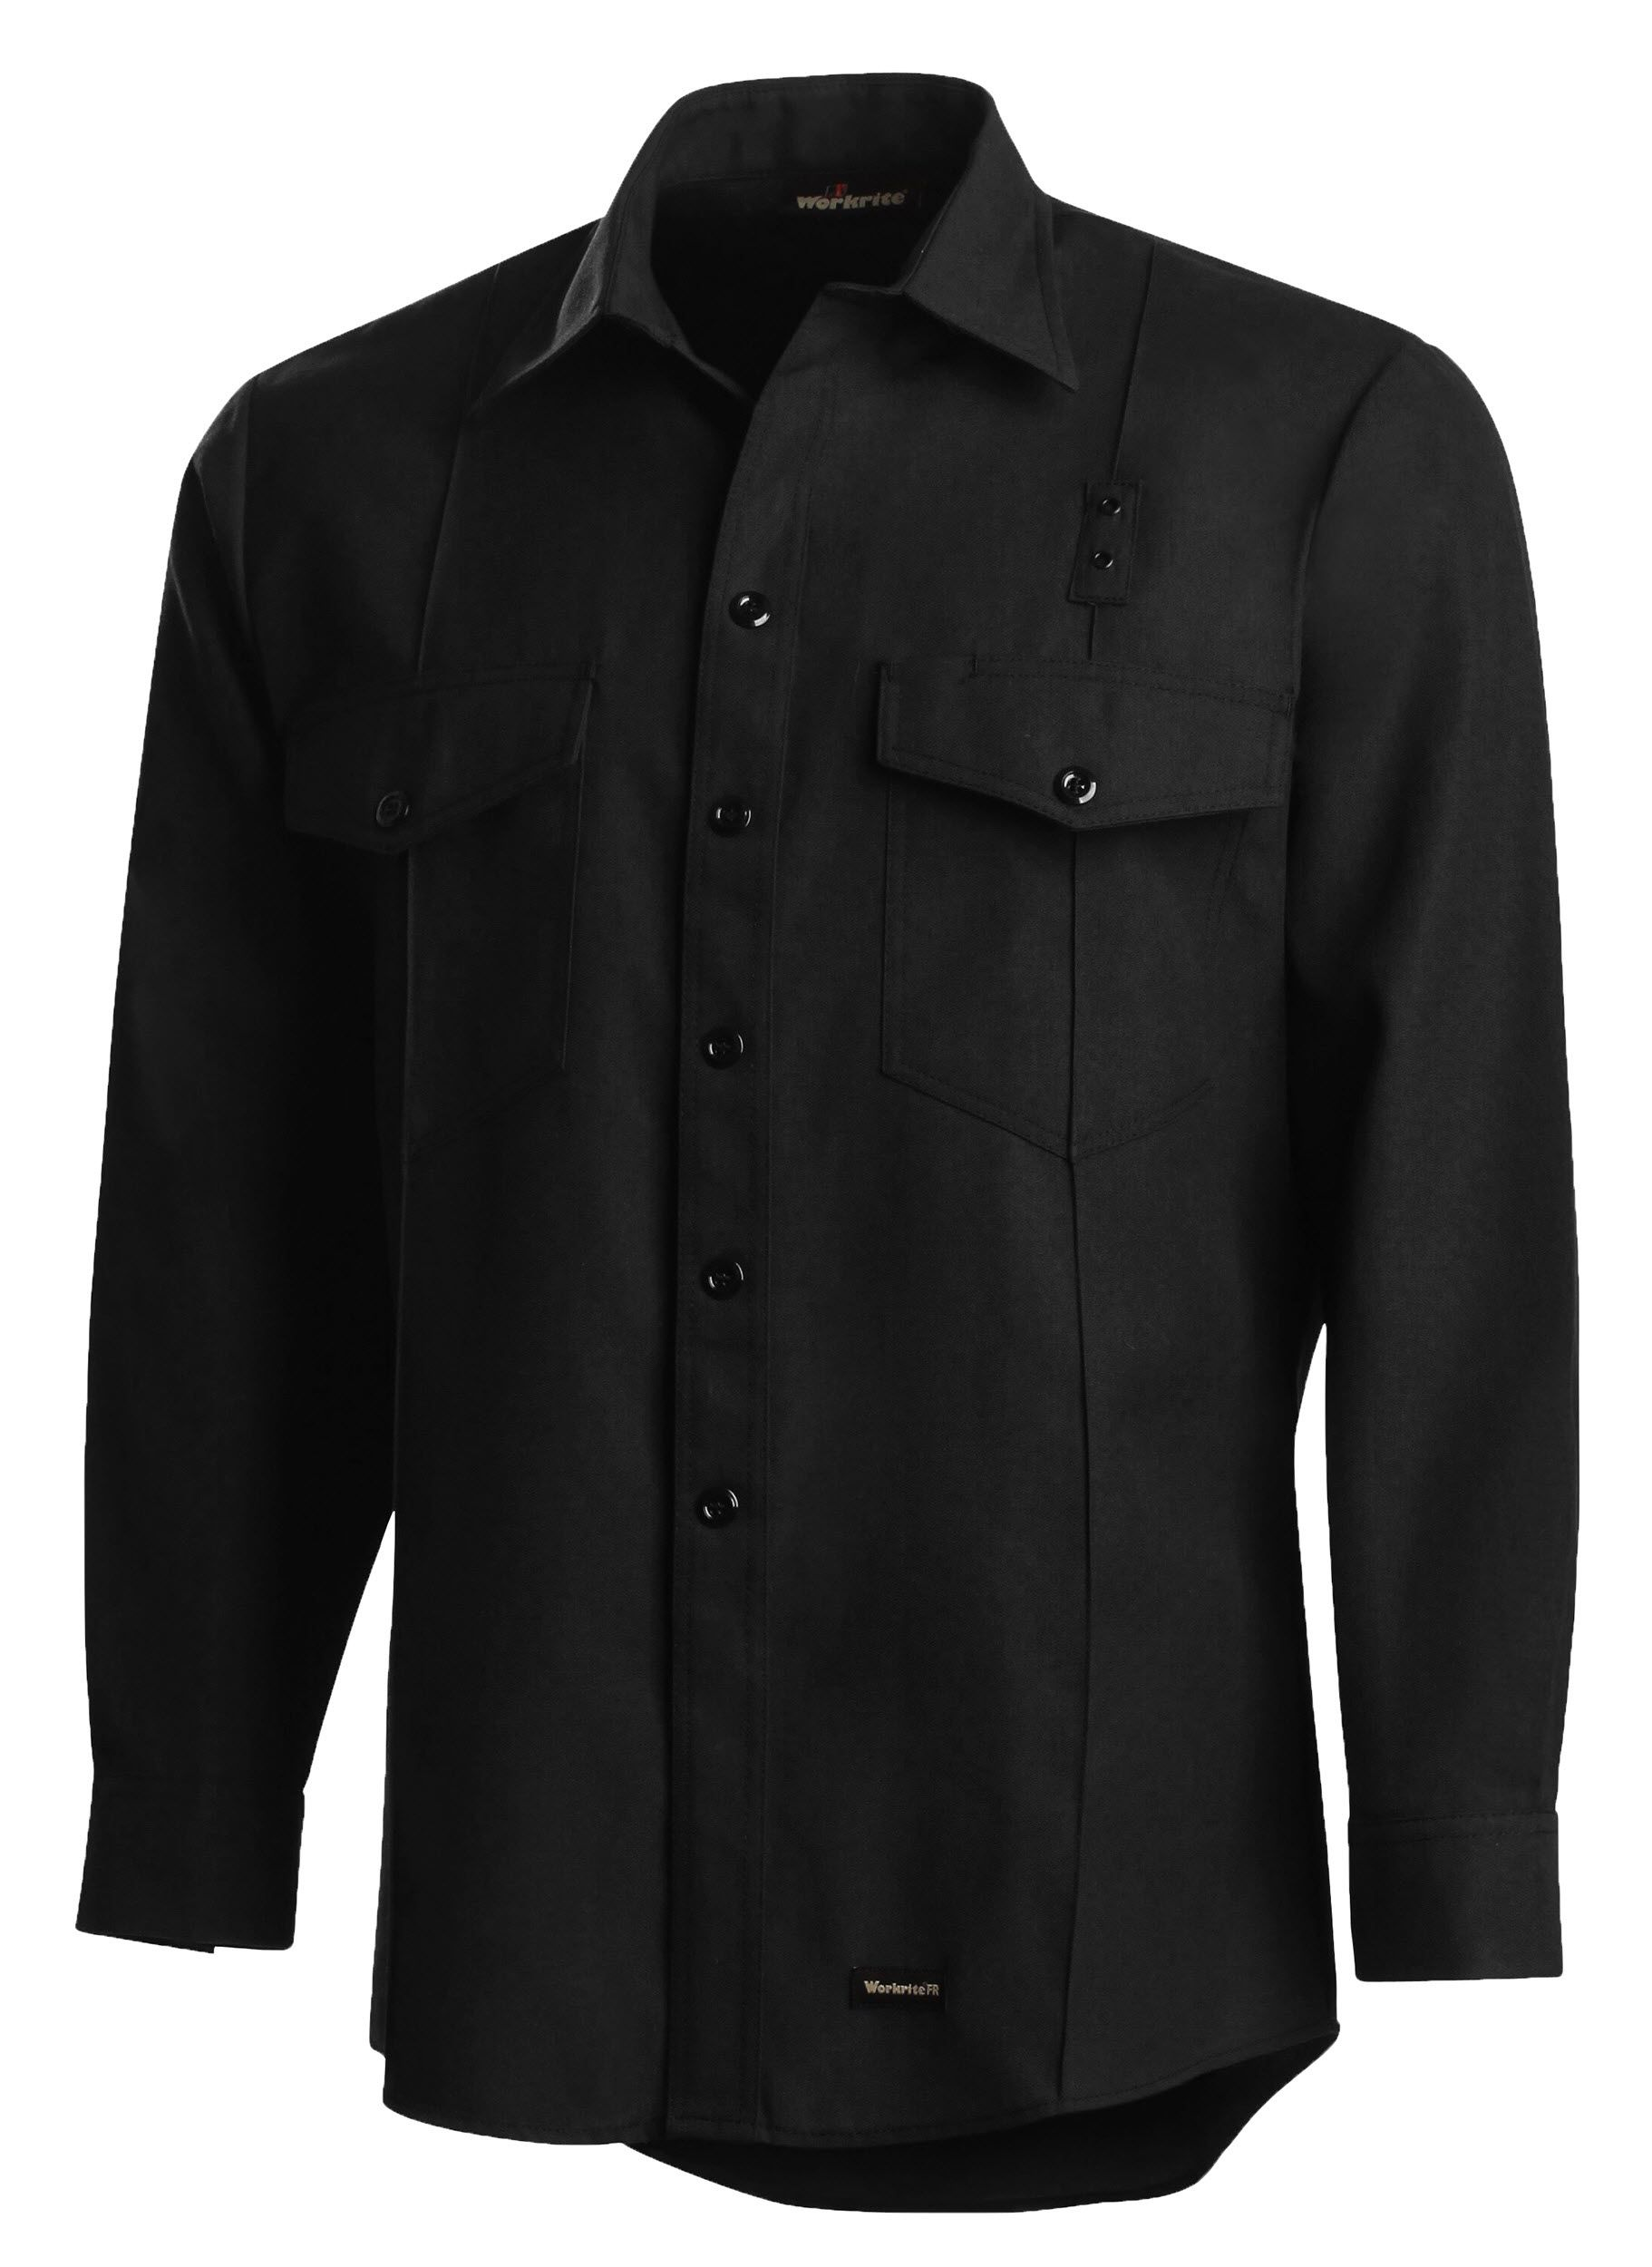 4.5 oz. Nomex IIIA Long-Sleeve Firefighter Shirt-